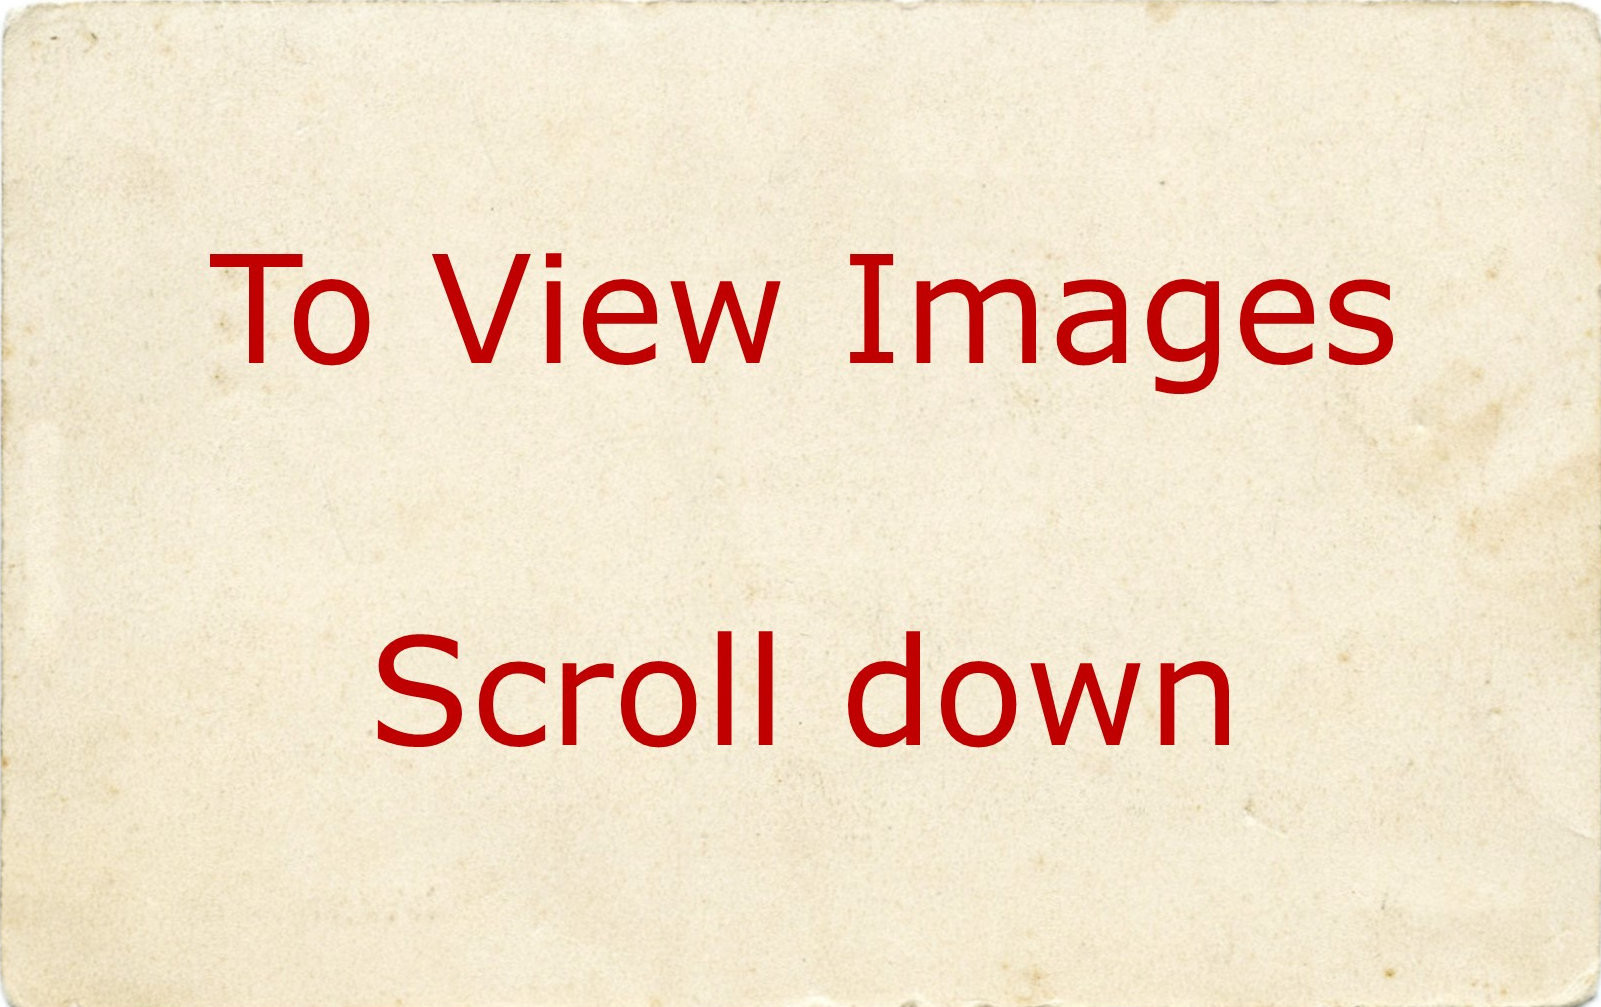 To View Images Scroll Down